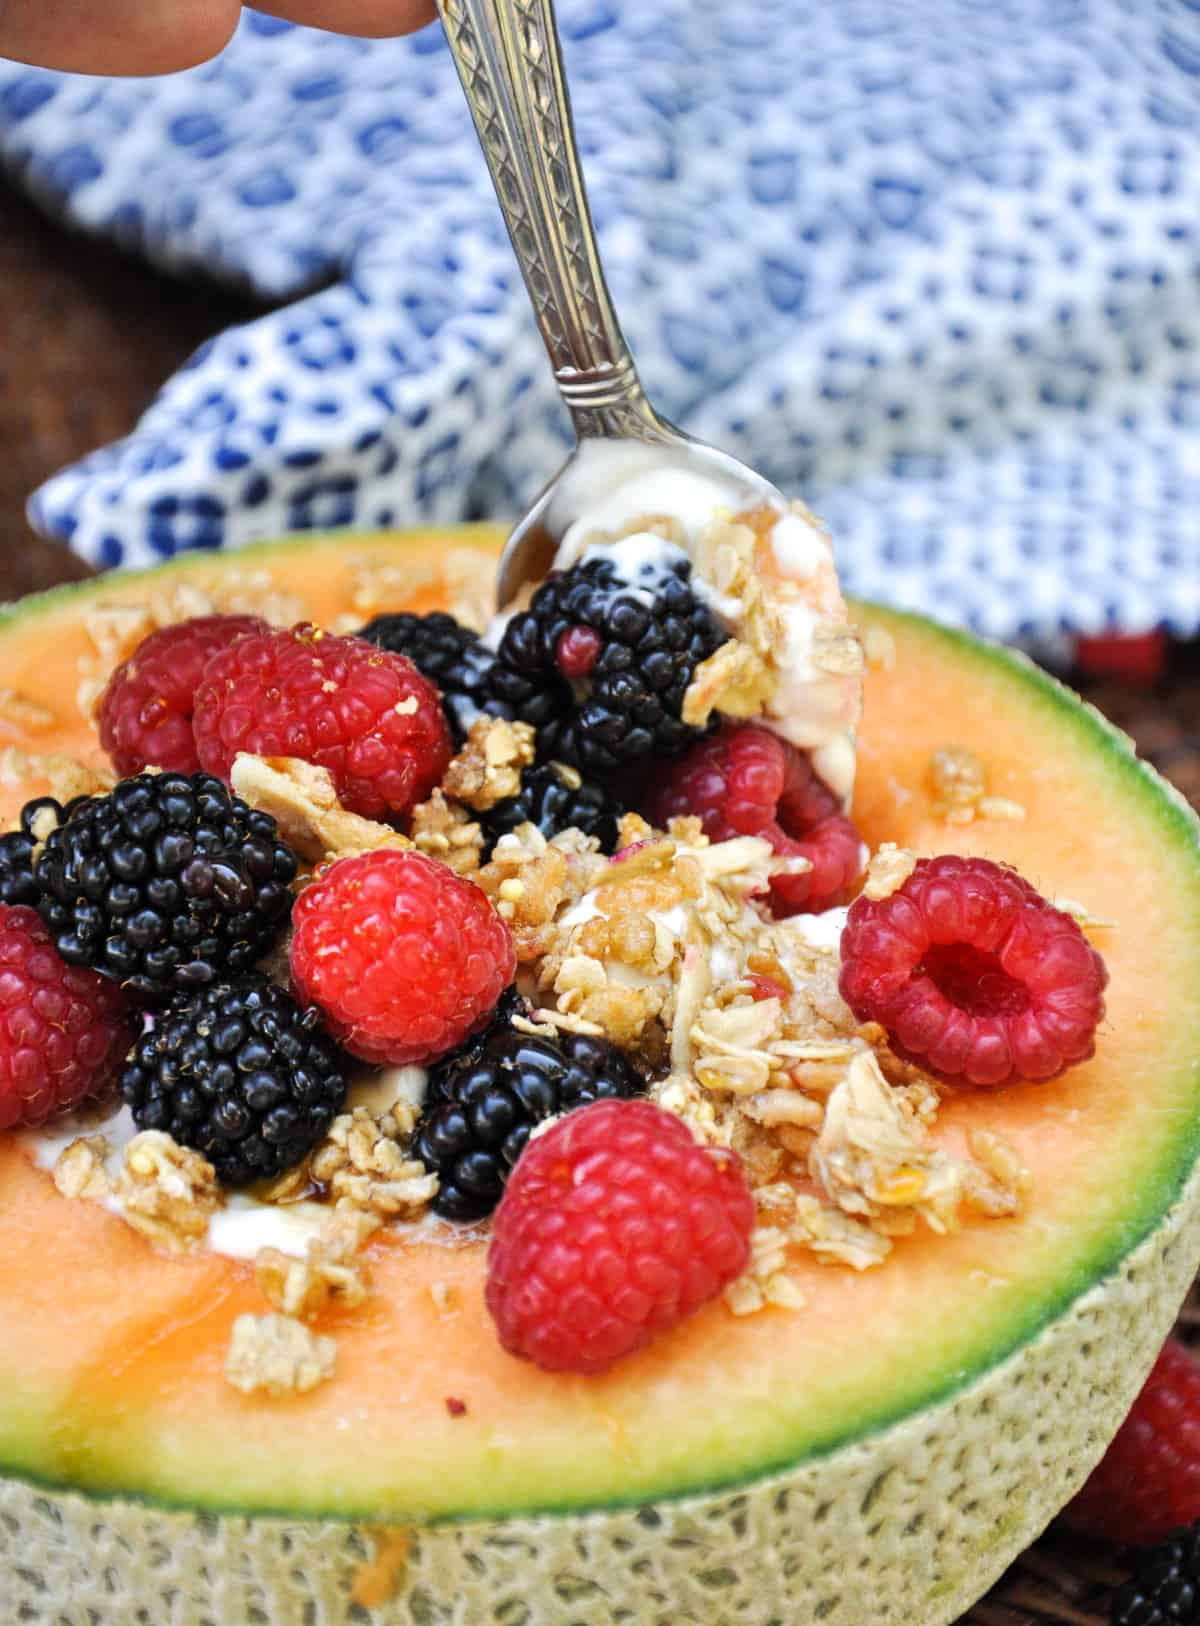 Cantaloupe Breakfast Bowls. Perfect for dessert too! Load the center with greek yogurt and top with fresh berries and granola. YUM!